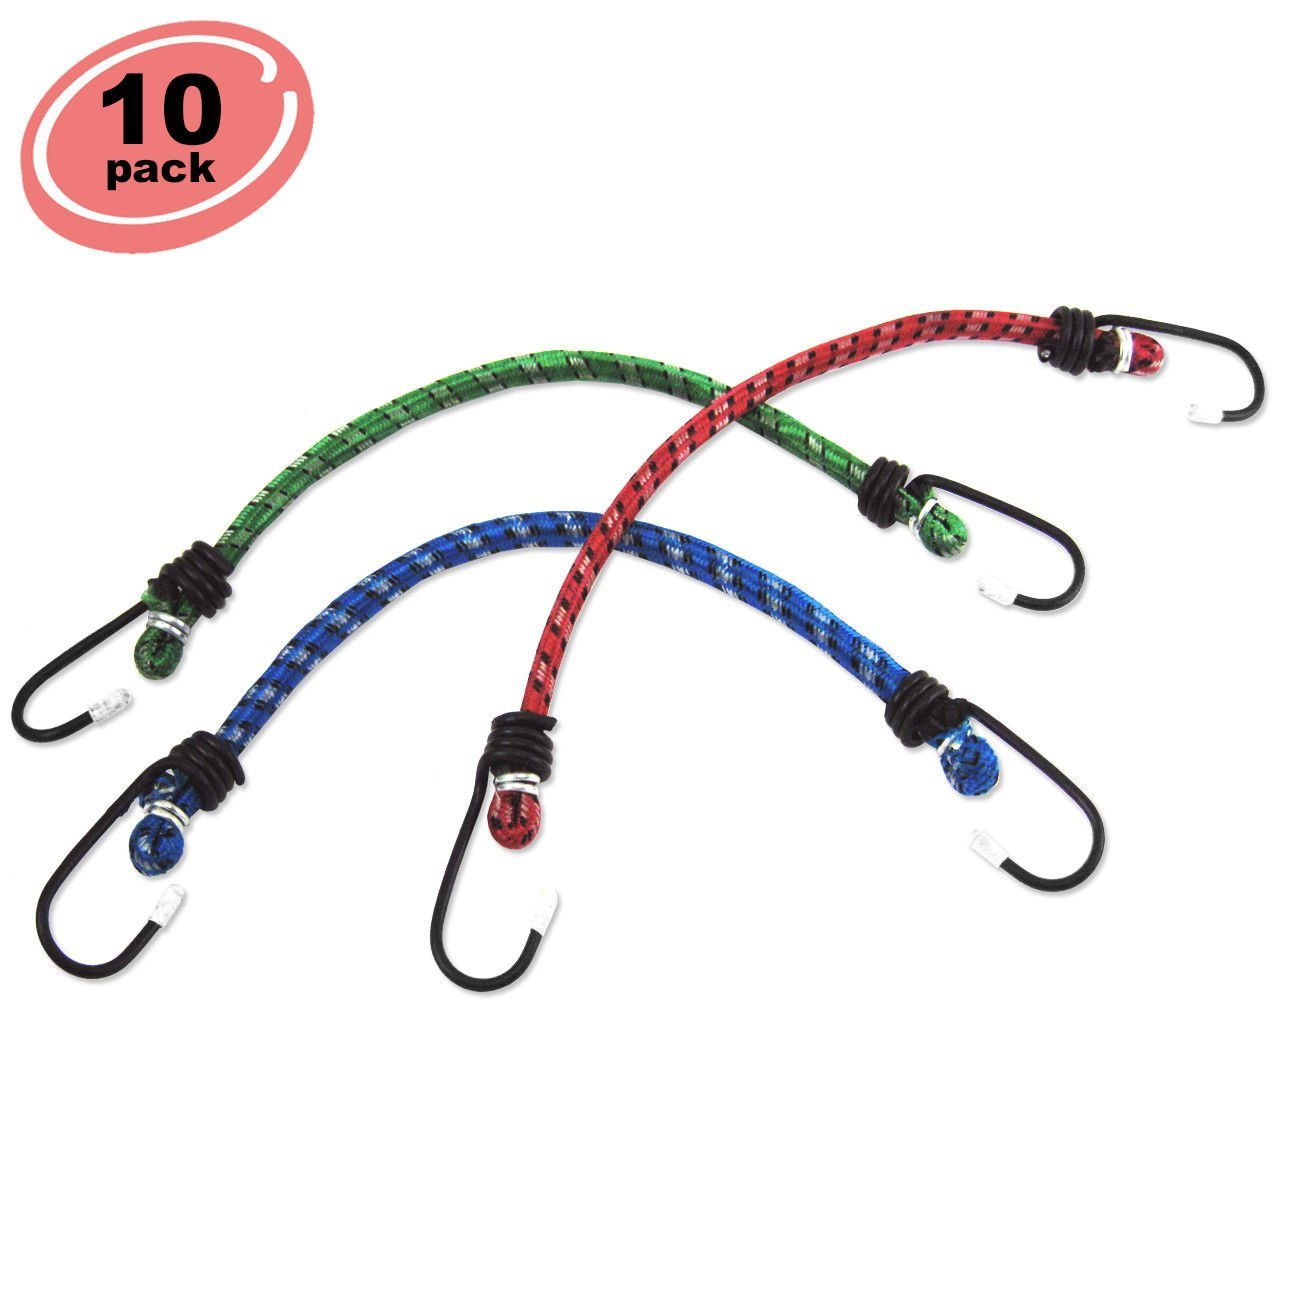 "ESKALEX>>10pc Bungee Cord 18"" inch Heavy Duty Straps 2 Hooks Tie Down Set and Bungee Cord 18"" 10 PC"